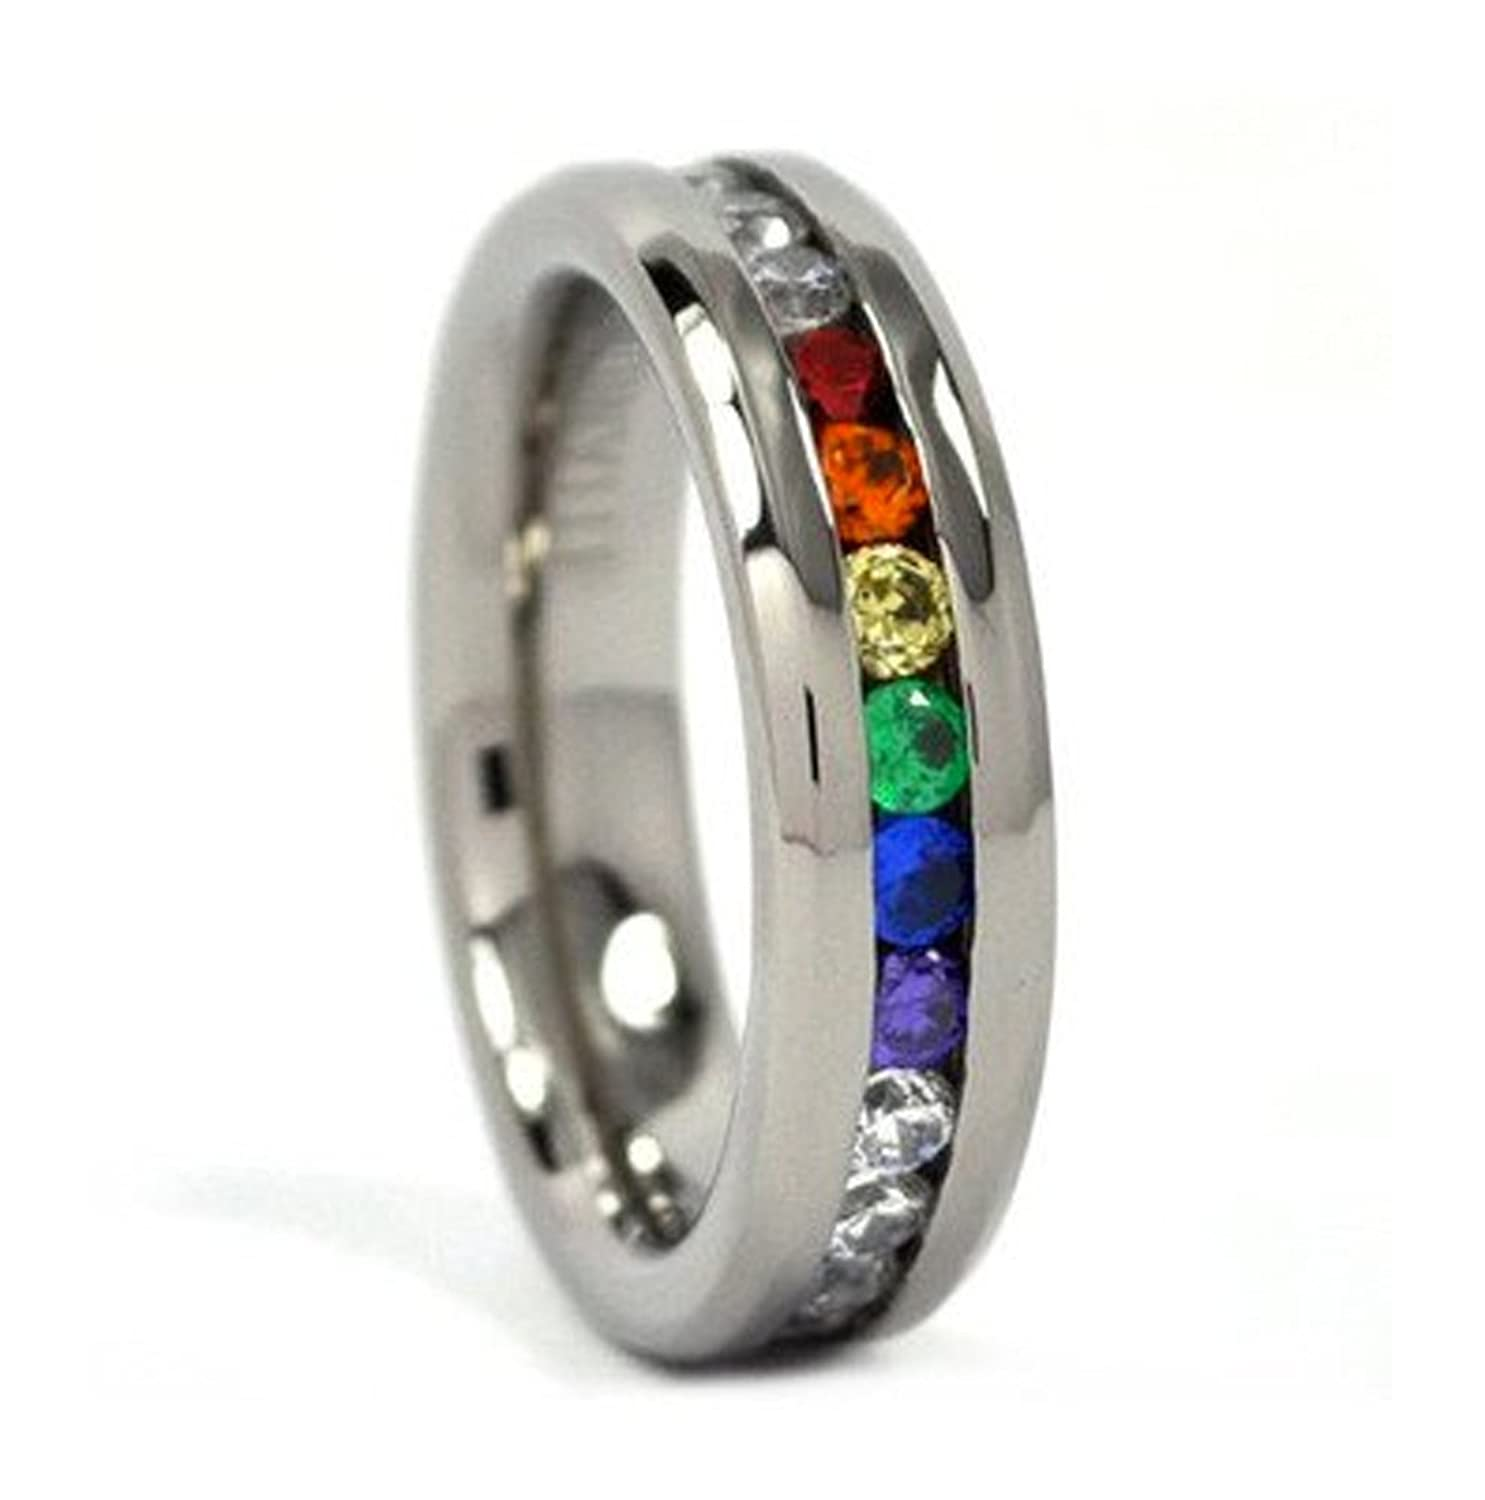 las rainbow lgbt jewelry wedding ring silver in pride rings sterling vegas sapphire